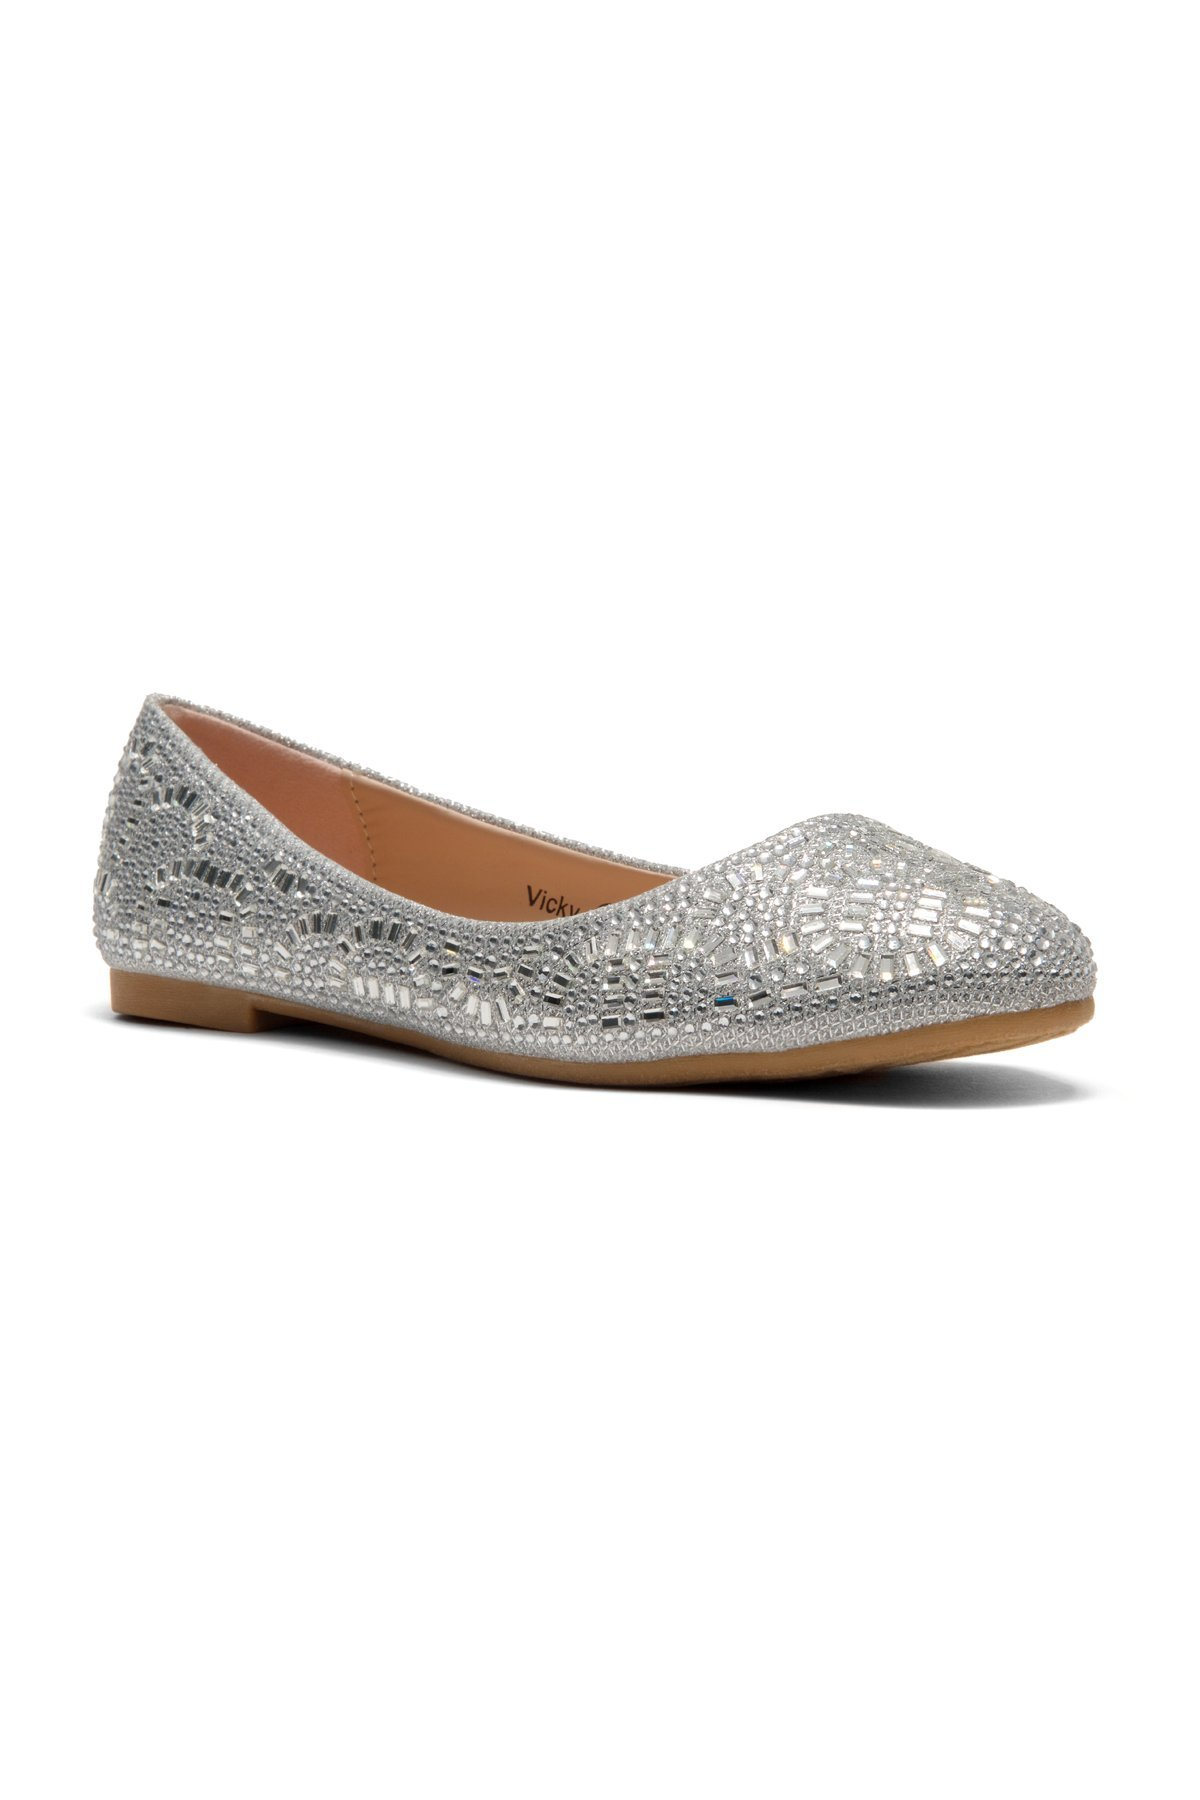 Herstyle Women's Vicky Round Toe Jeweled Embellishments Silver 6.5